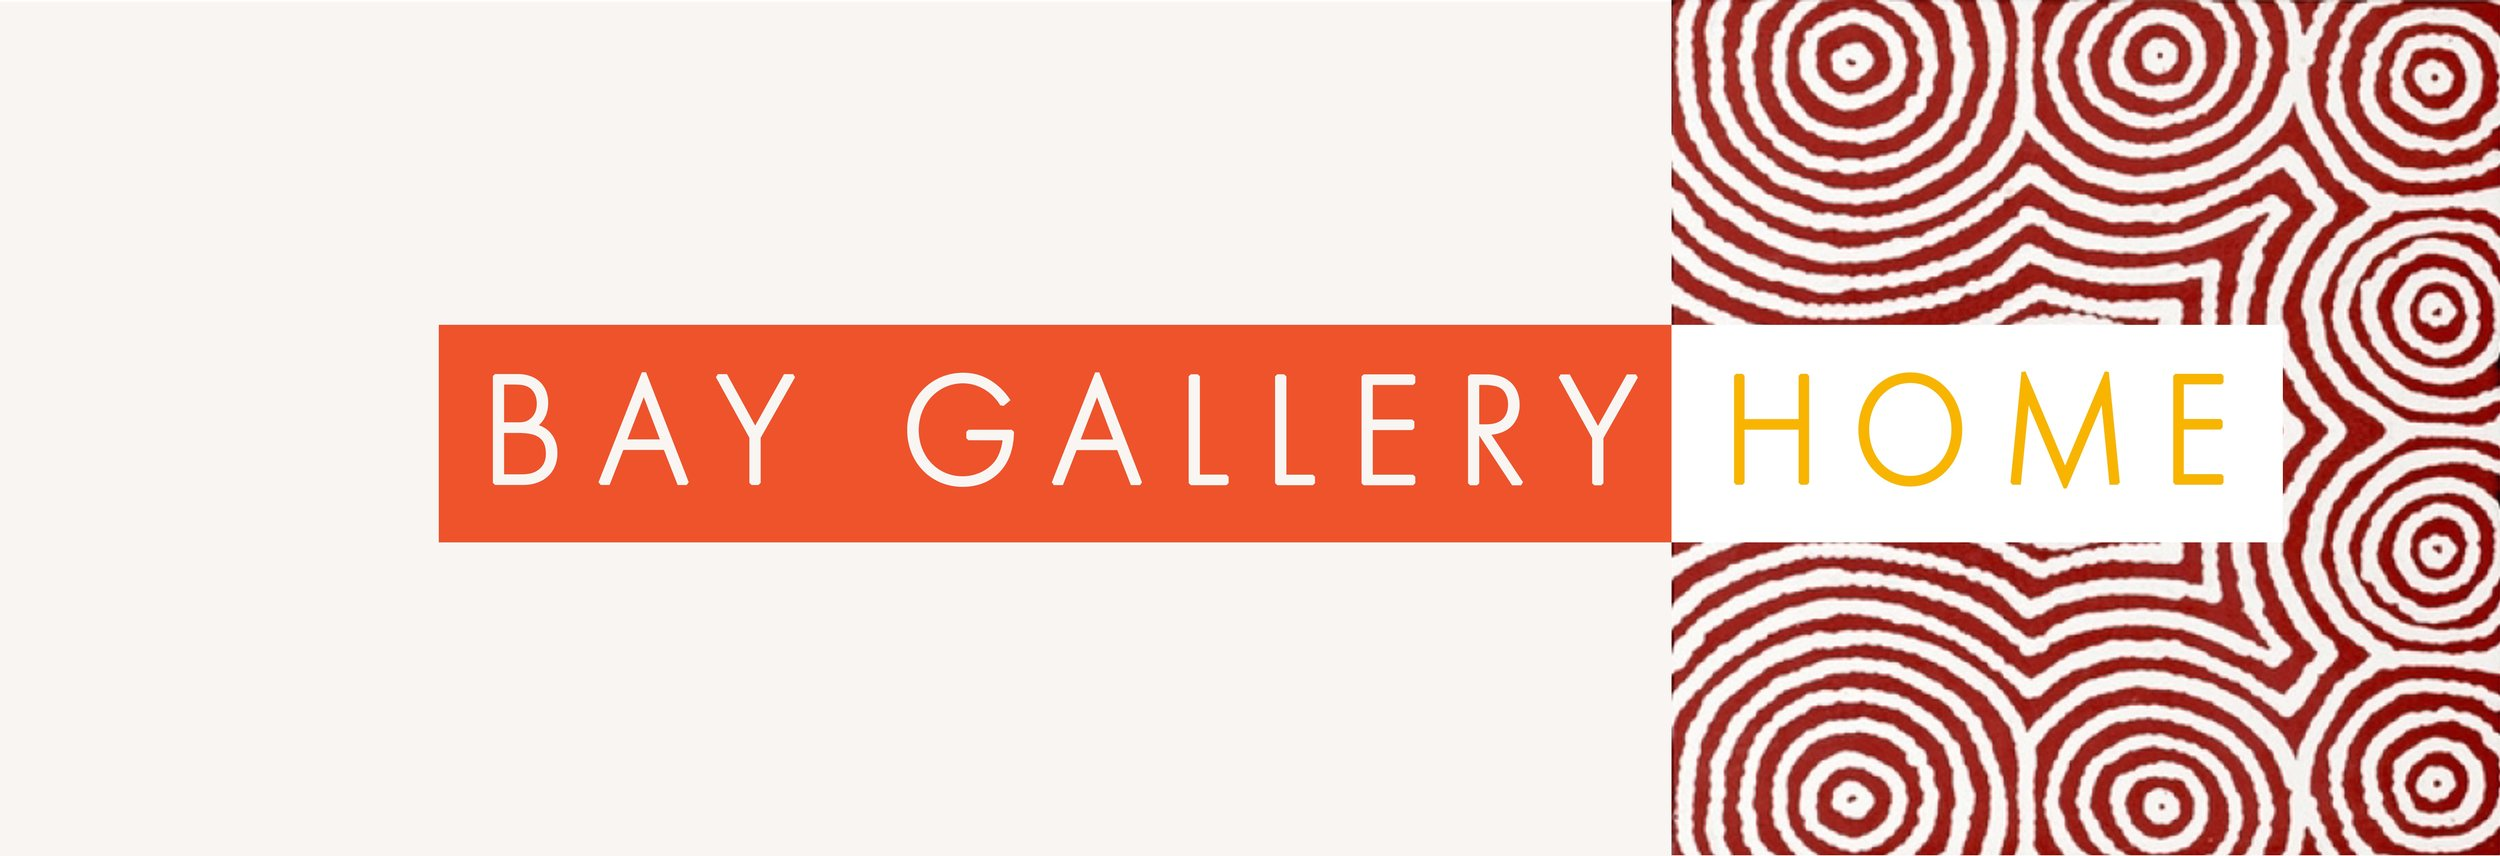 OUR NEW LOGO FOR BAY GALLERY HOME